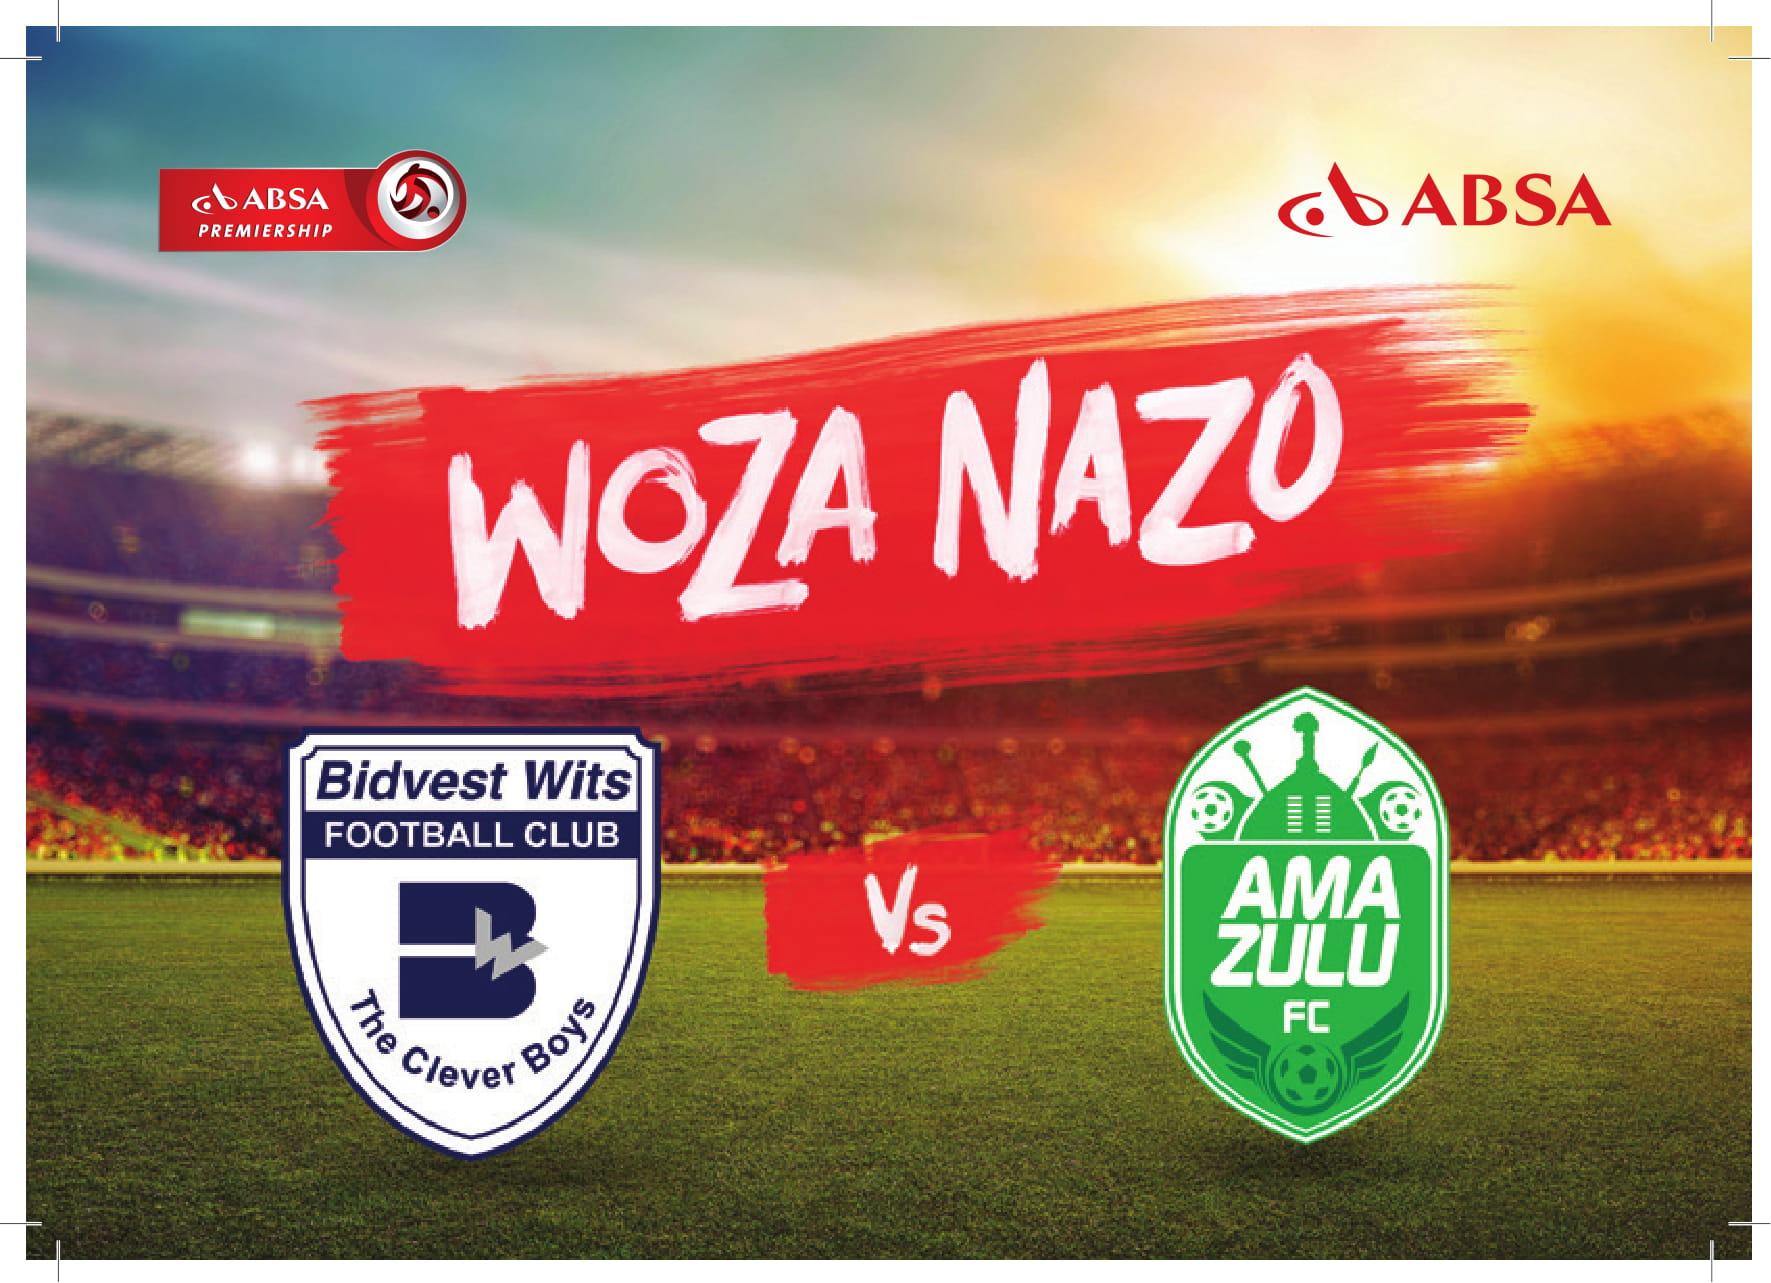 SA's oldest clubs Battle for Points to close off Absa Premiership 'Woza Nazo' campaign